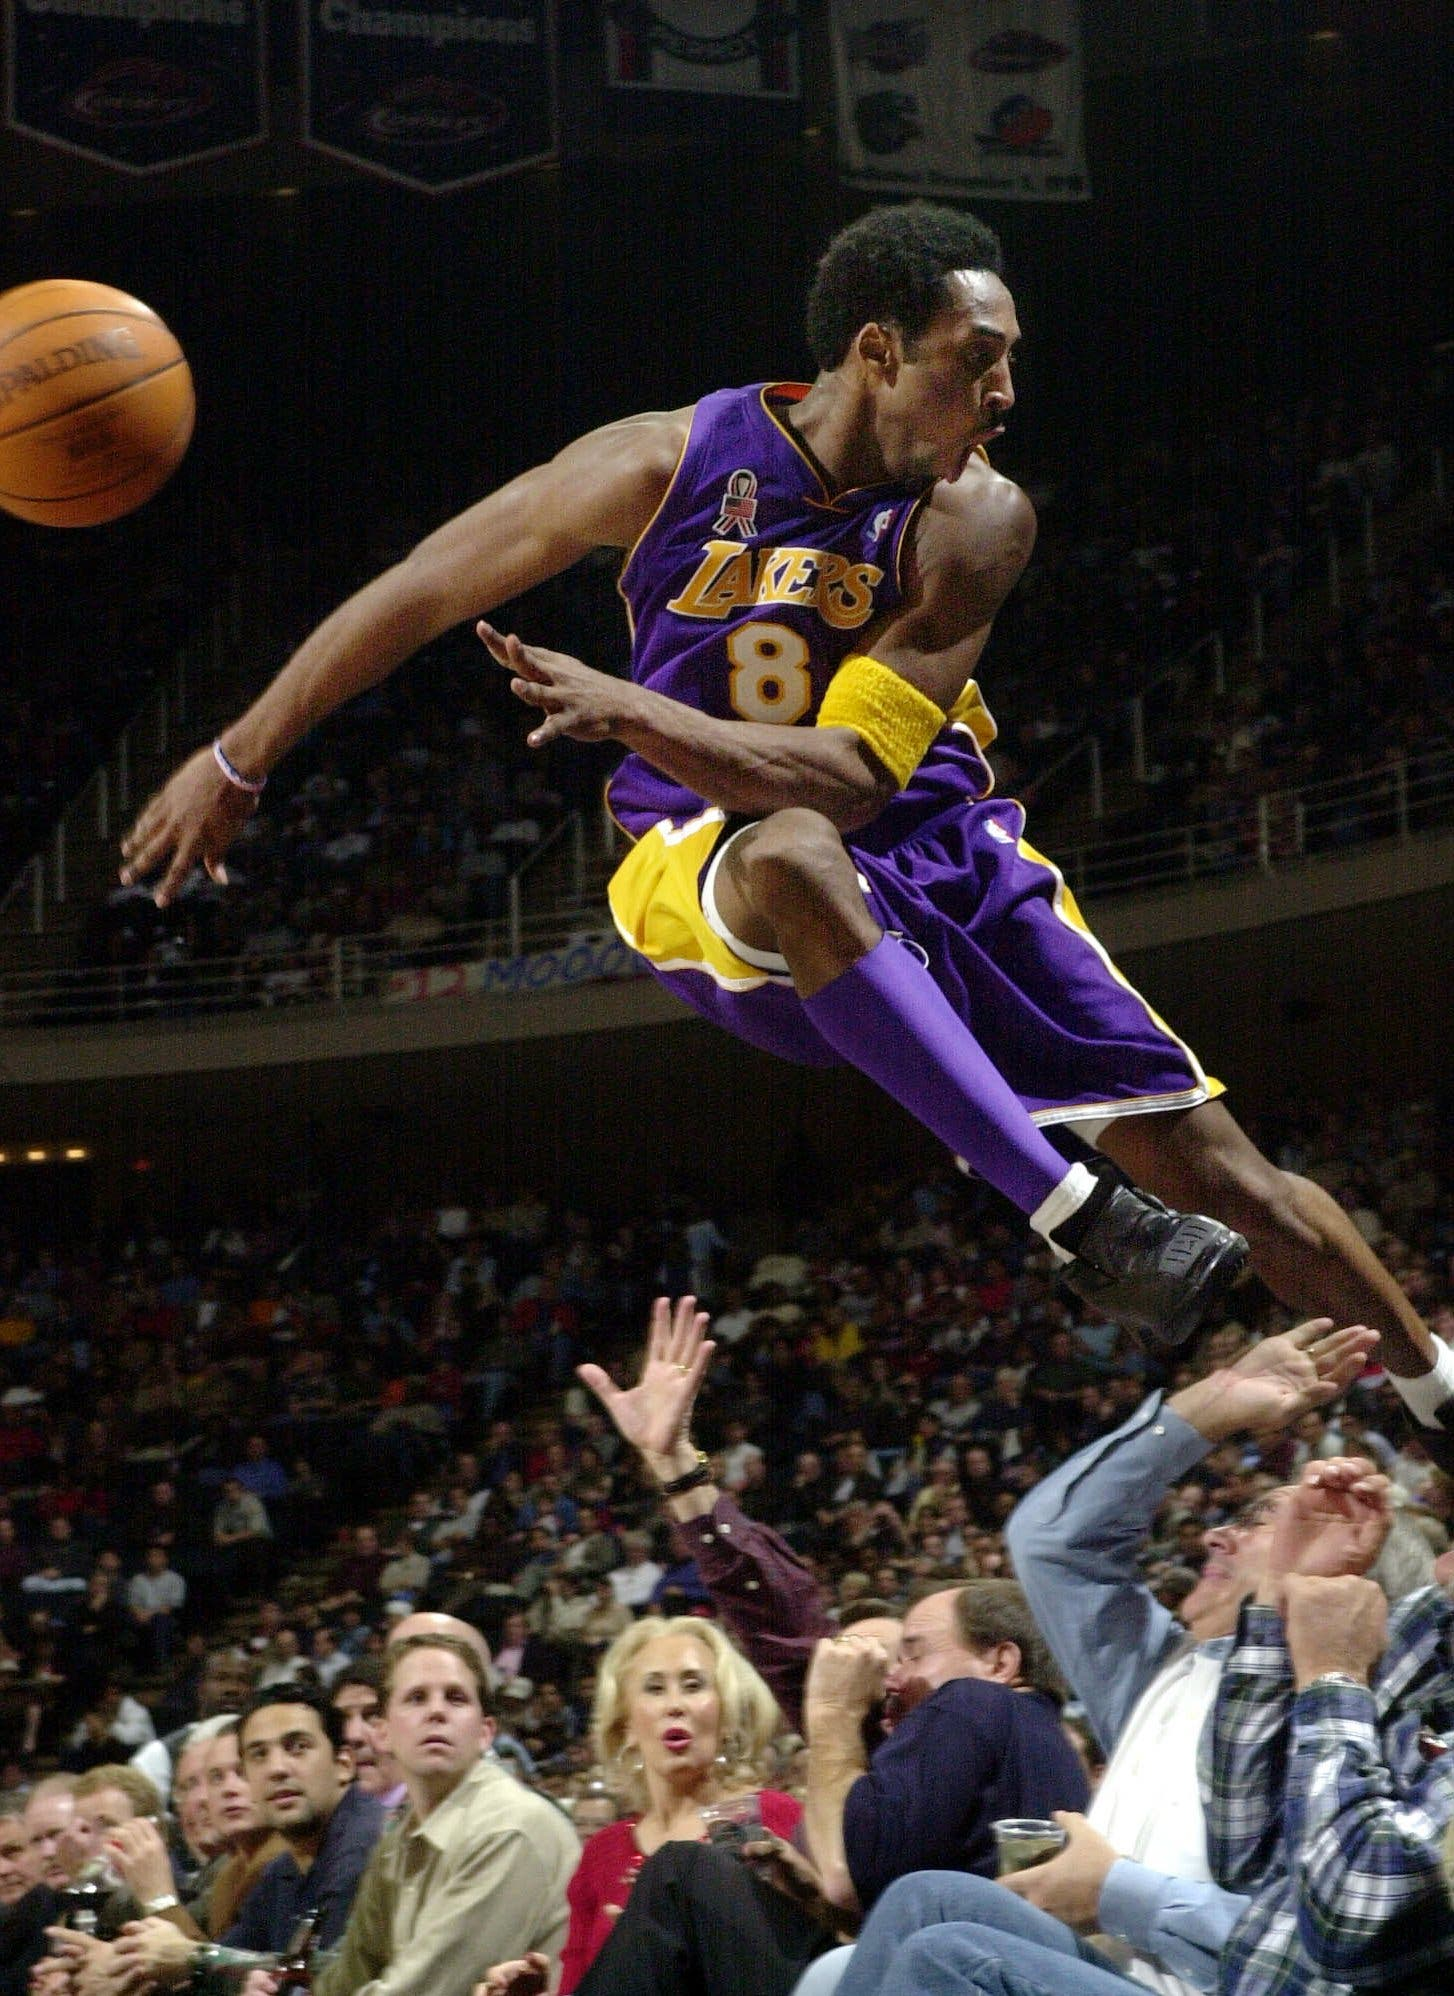 Kobe Bryant jumps over a row of fans after saving the ball from going out of bounds in the second half of the Lakers 107-101 win over the Houston Rockets Thursday, Dec. 20, 2001. (AP)